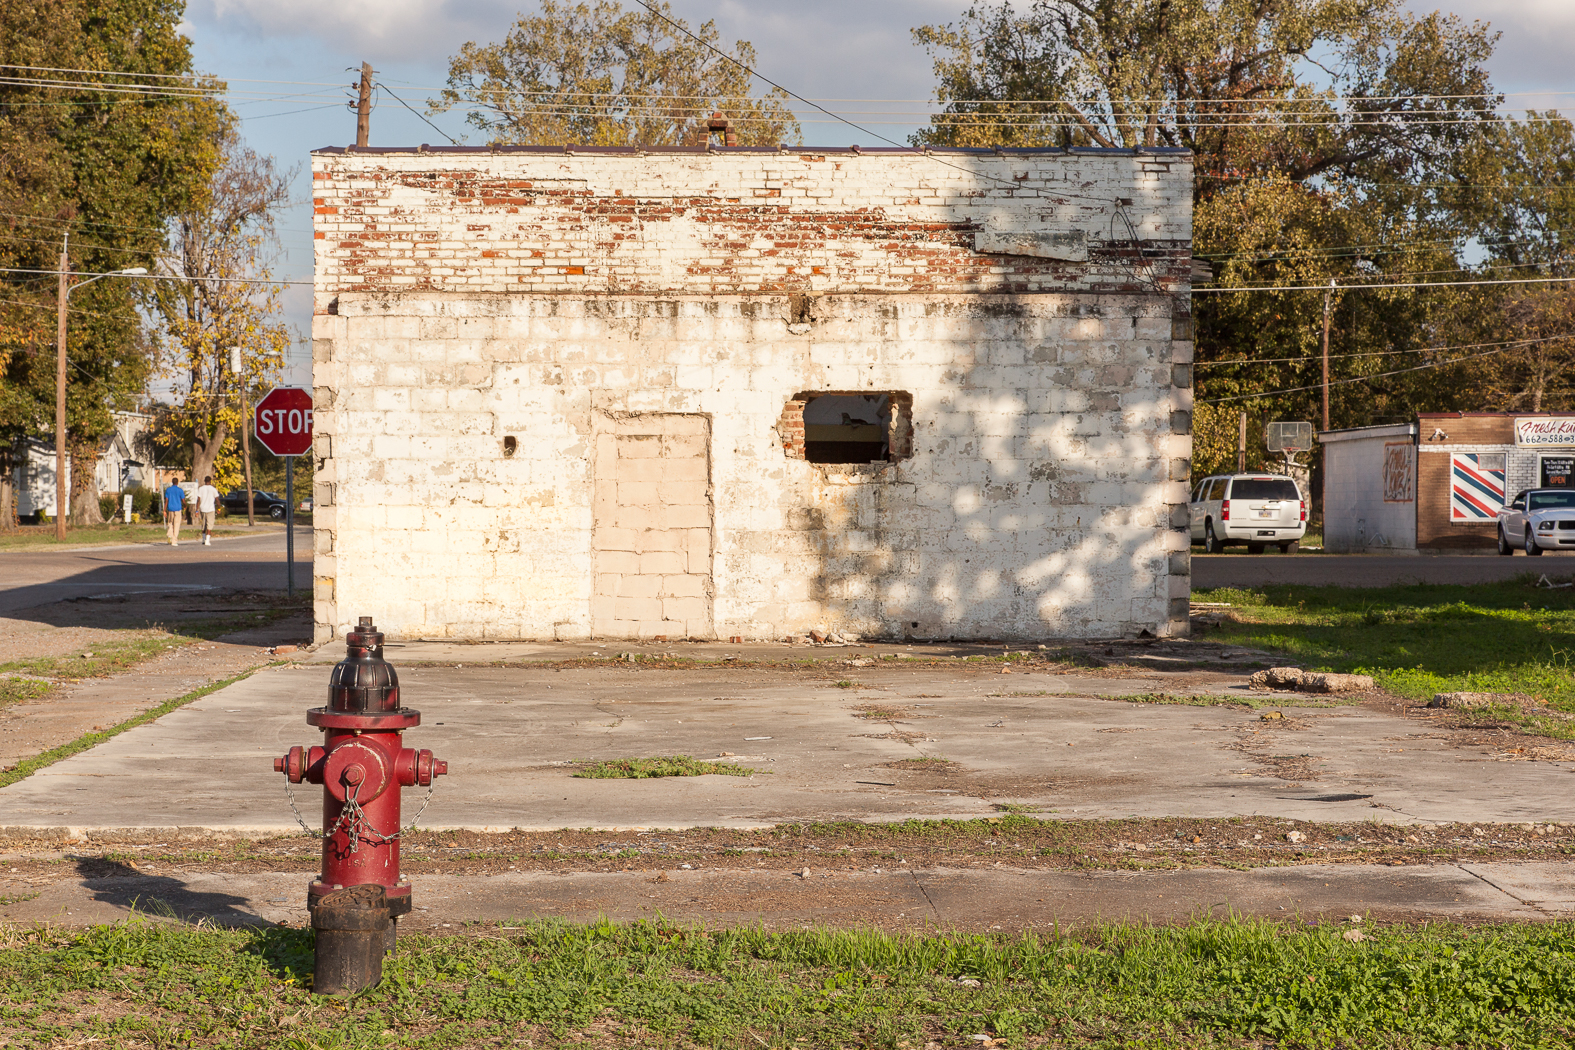 Fire Hydrant, Cleveland, MS 2012